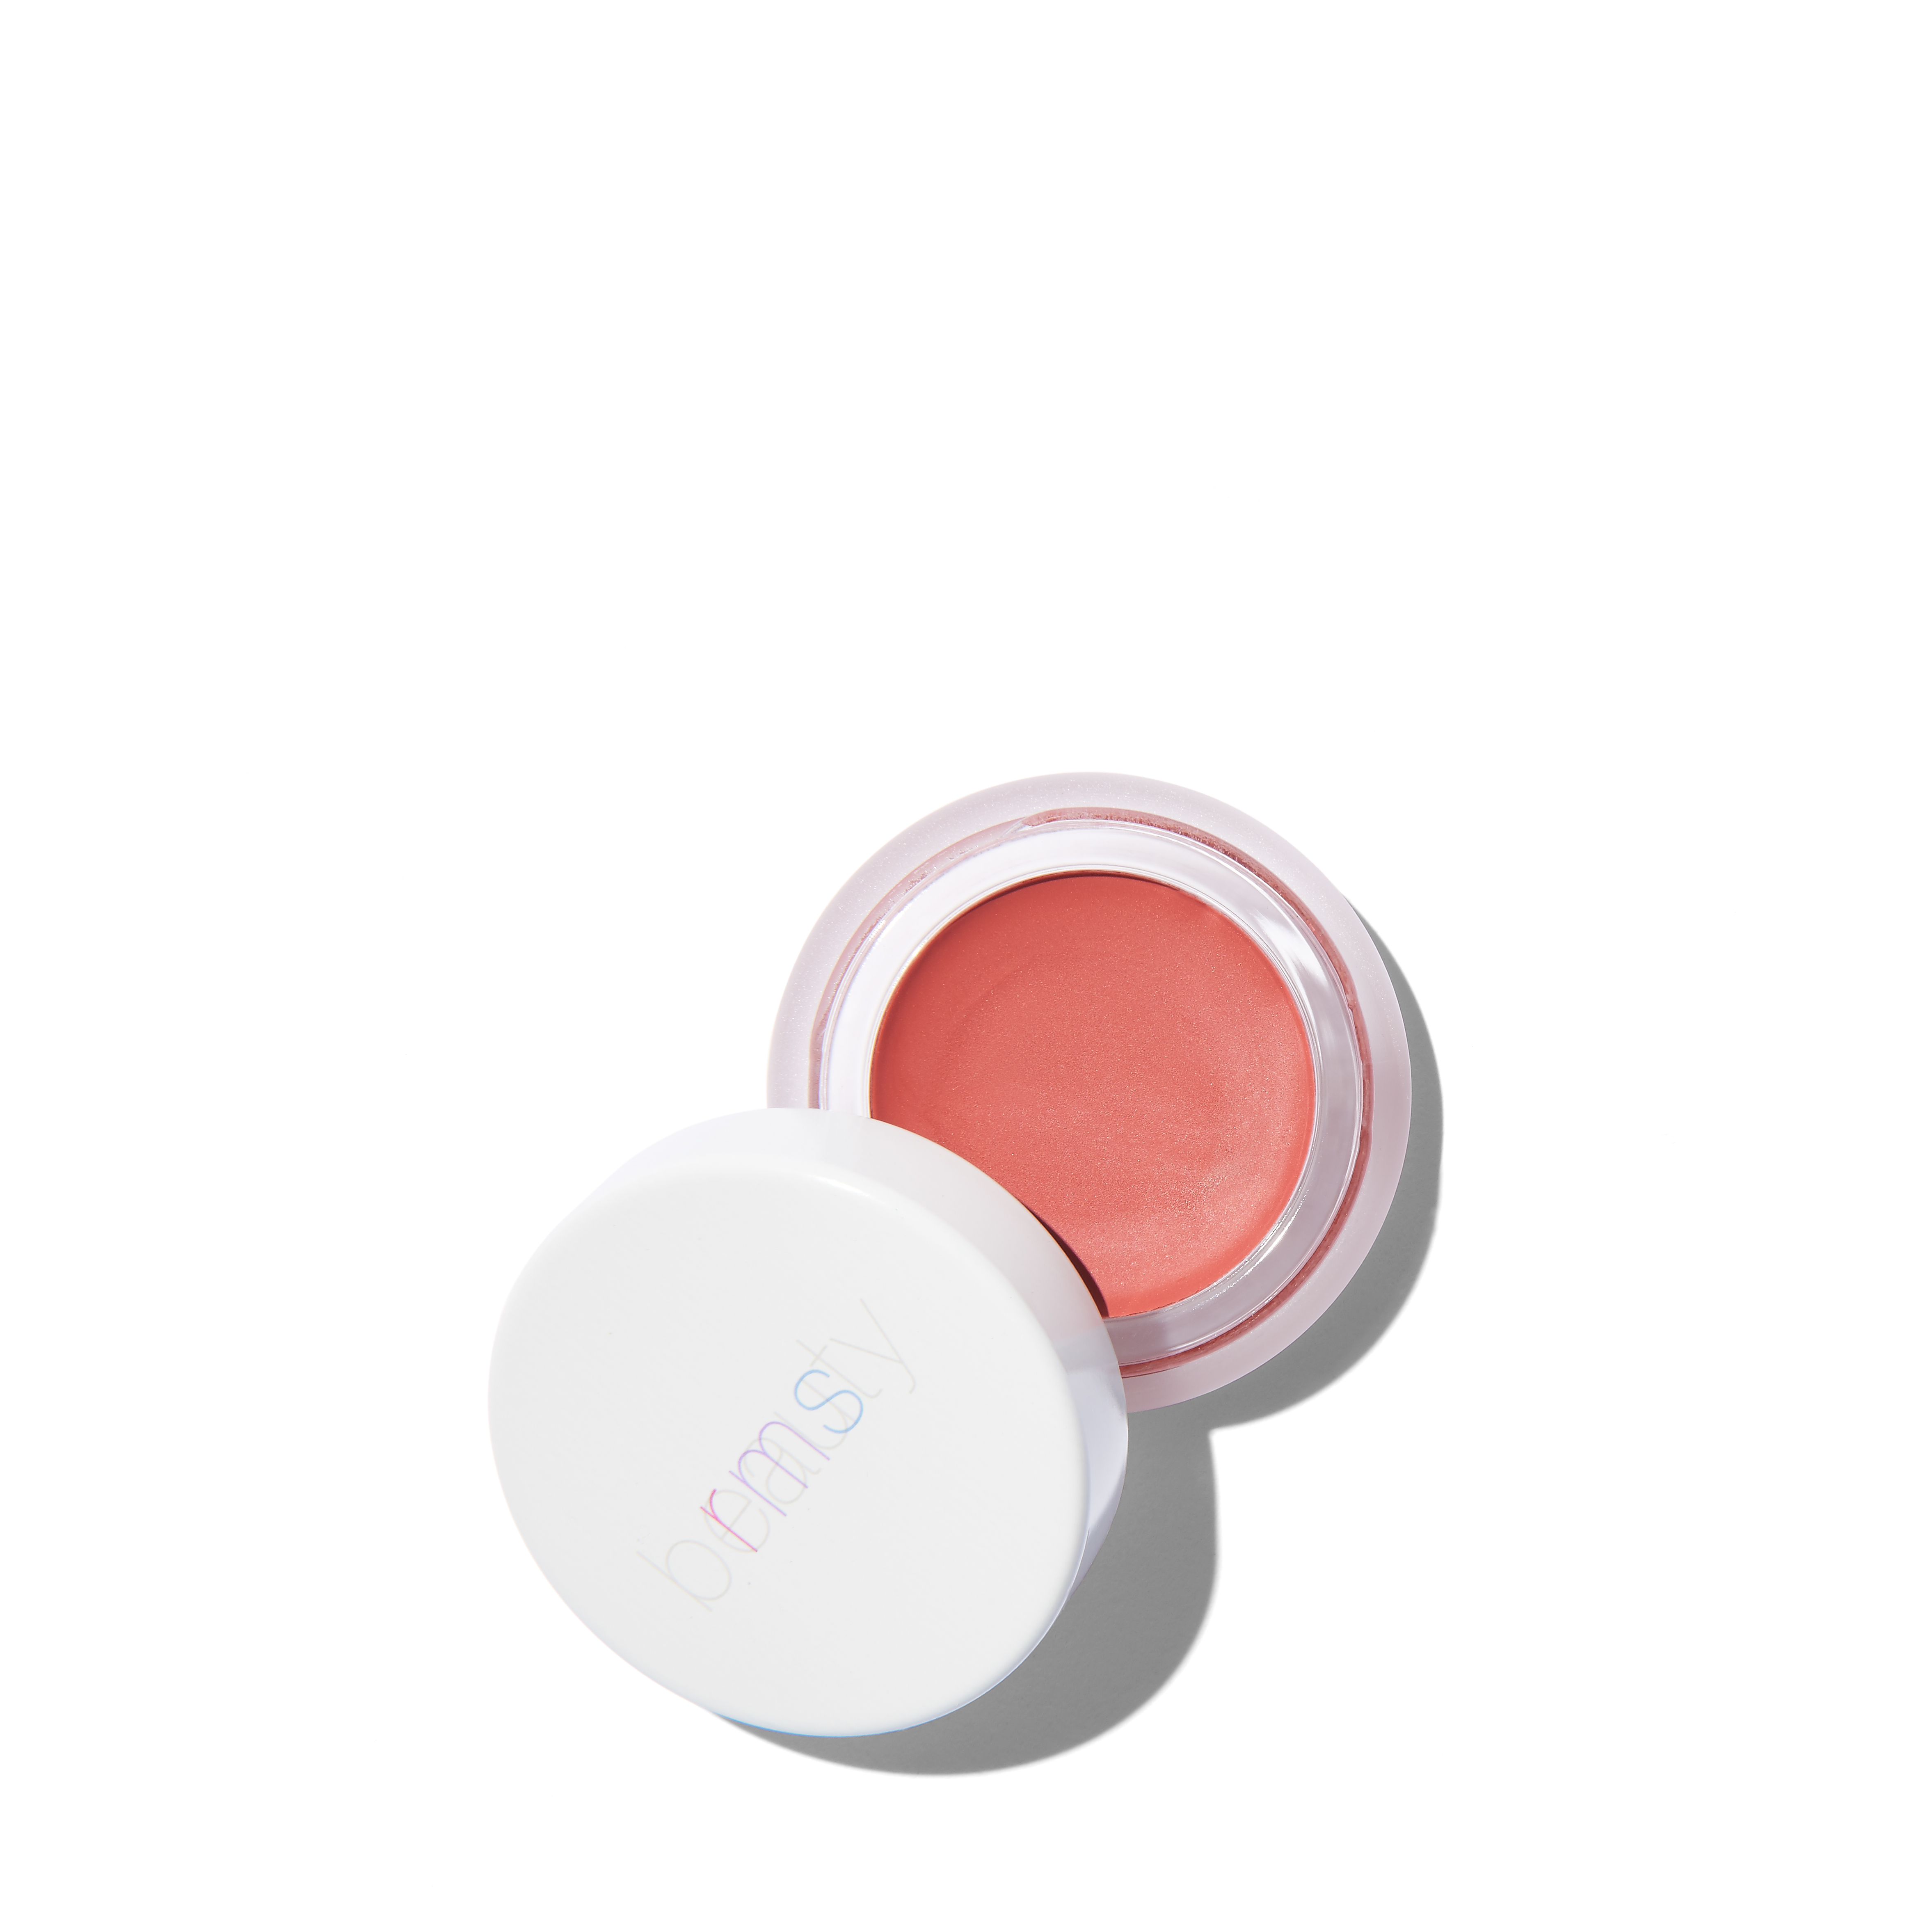 816248020164 - RMS Beauty Lip2Cheek